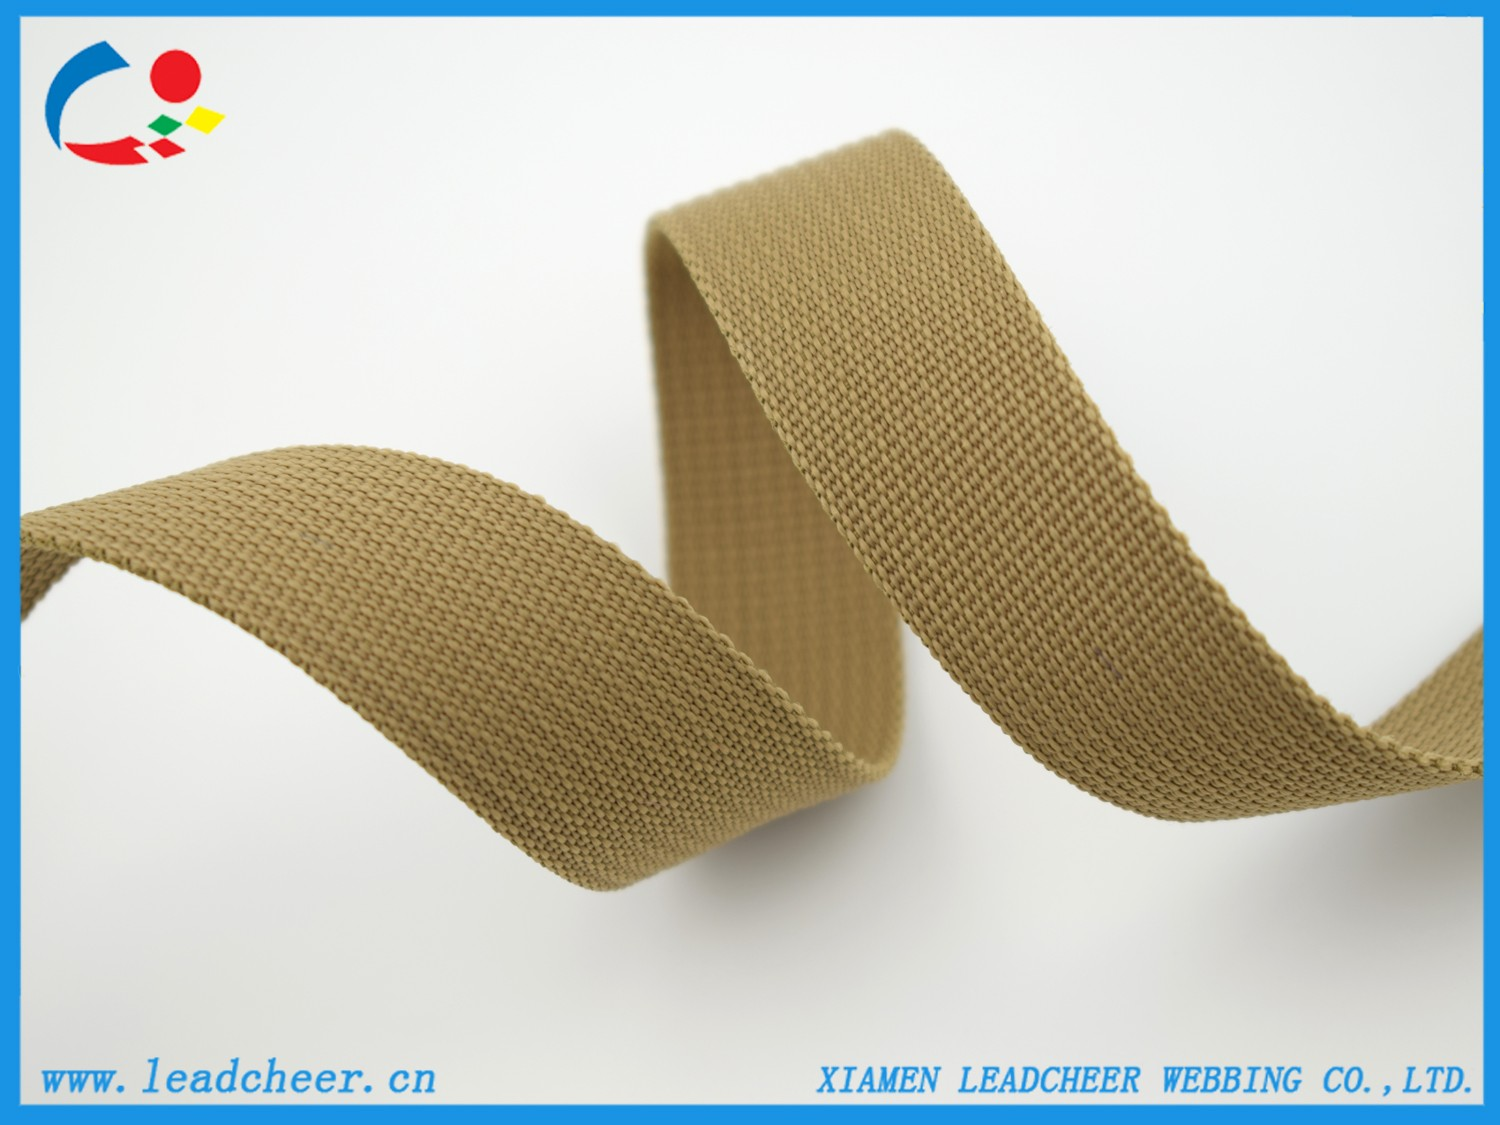 High quality Outdoor PP Webbing Quotes,China Outdoor PP Webbing Factory,Outdoor PP Webbing Purchasing